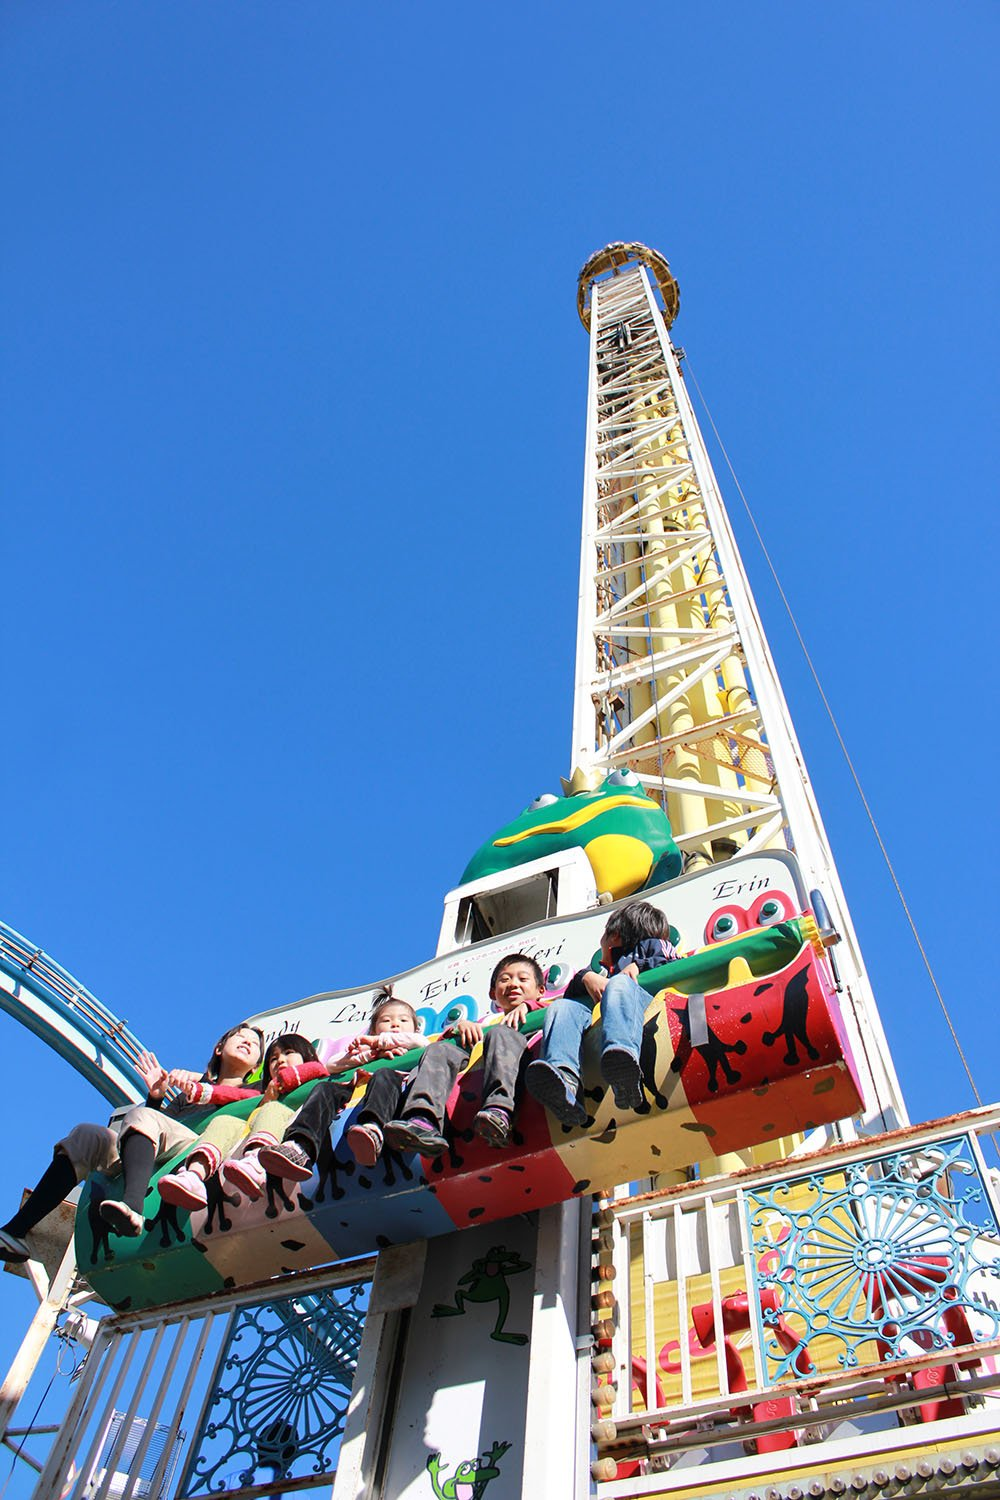 free-falling ride for kids